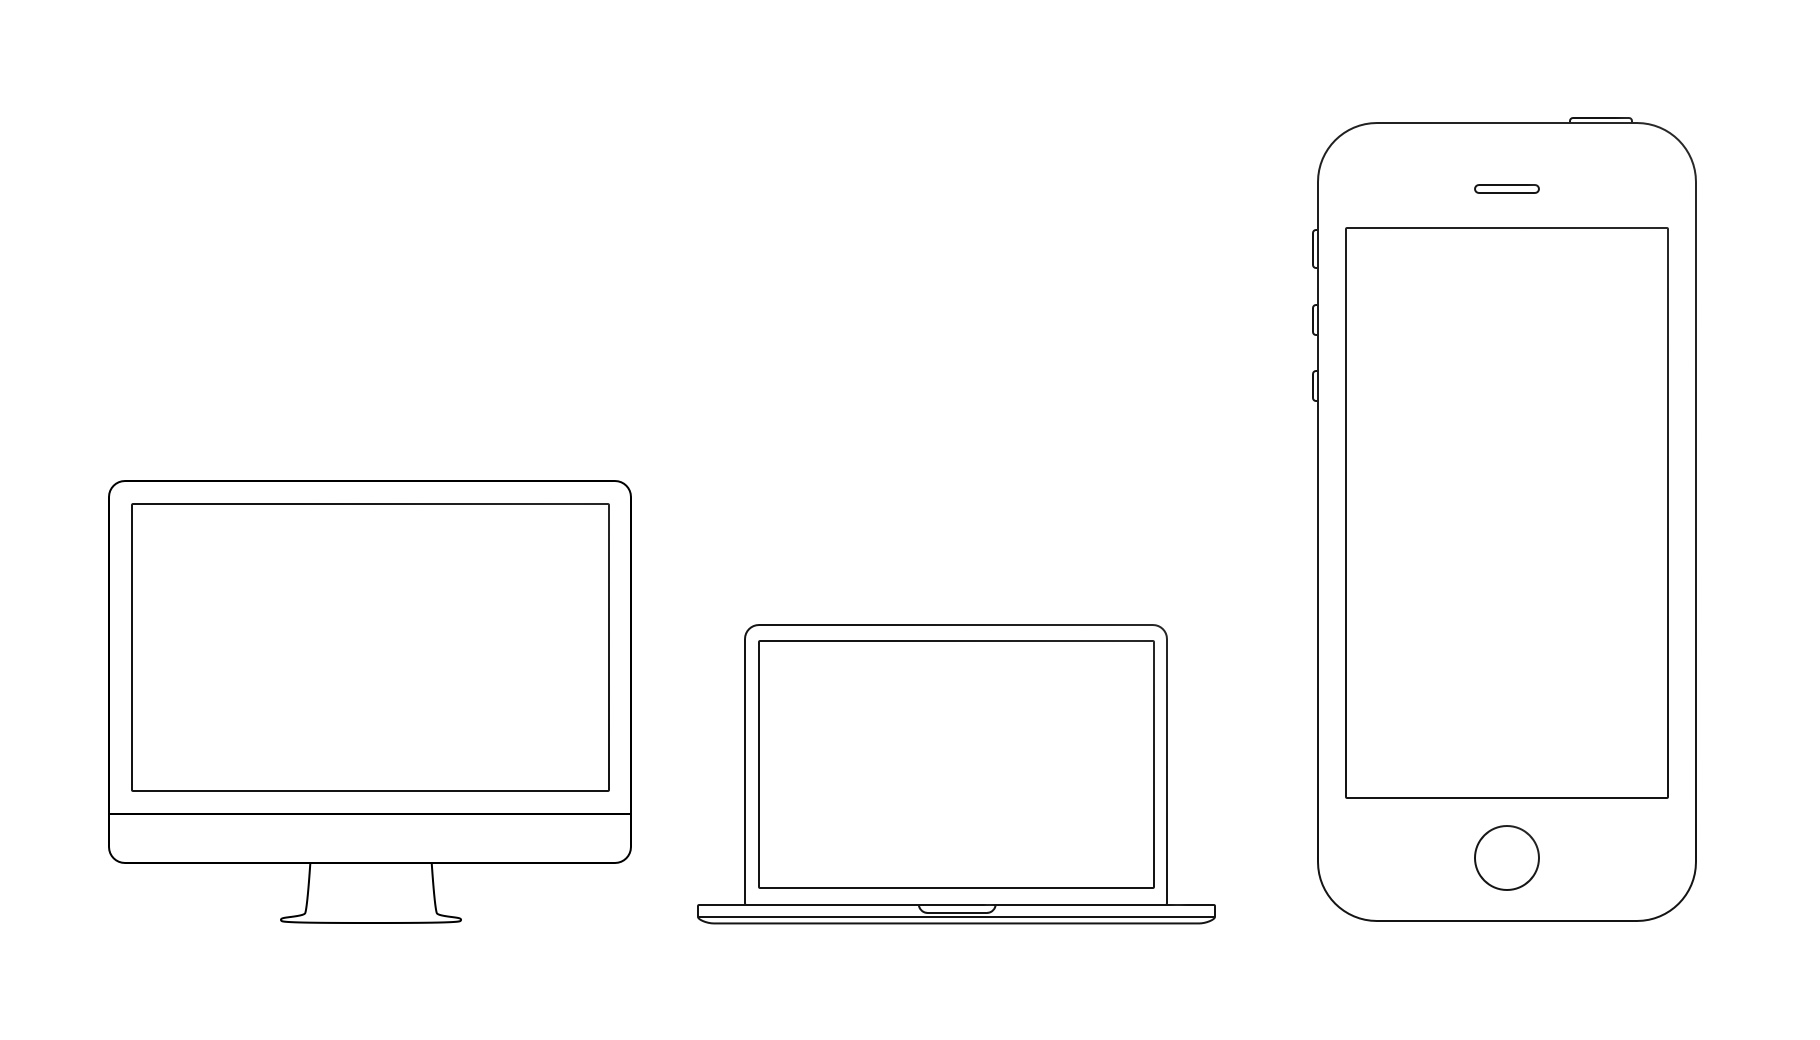 Apple devices outline